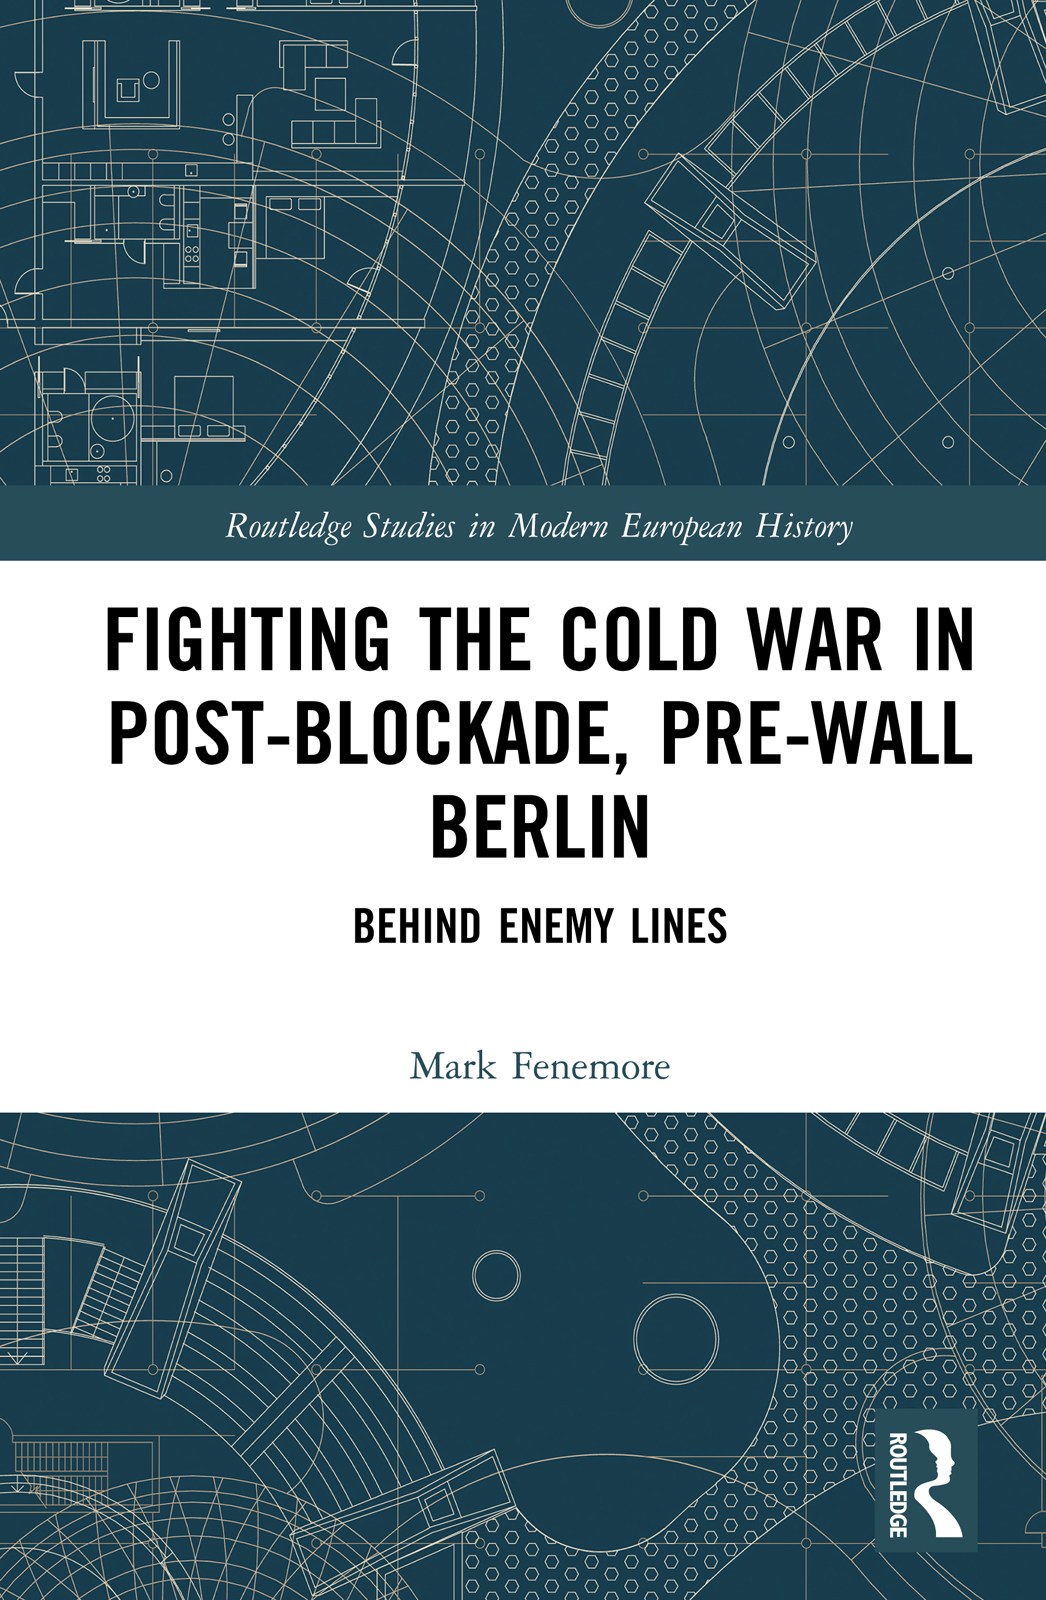 Fighting the Cold War in Post-Blockade, Pre-Wall Berlin: Behind Enemy Lines book cover